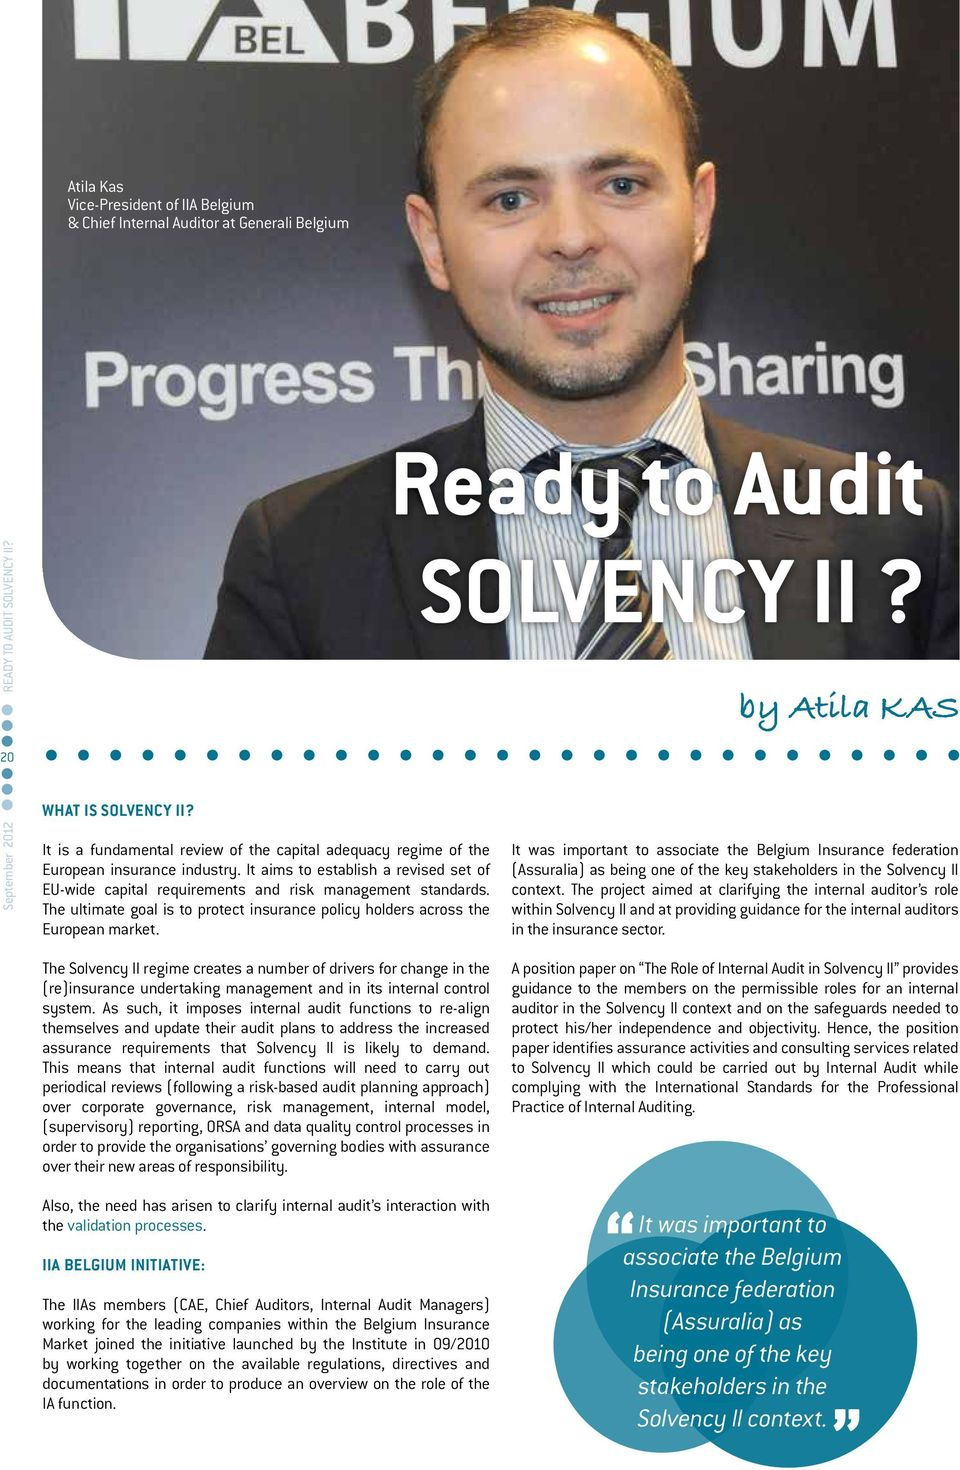 The ultimate goal is to protect insurance policy holders across the European market. Ready to Audit Solvency II?